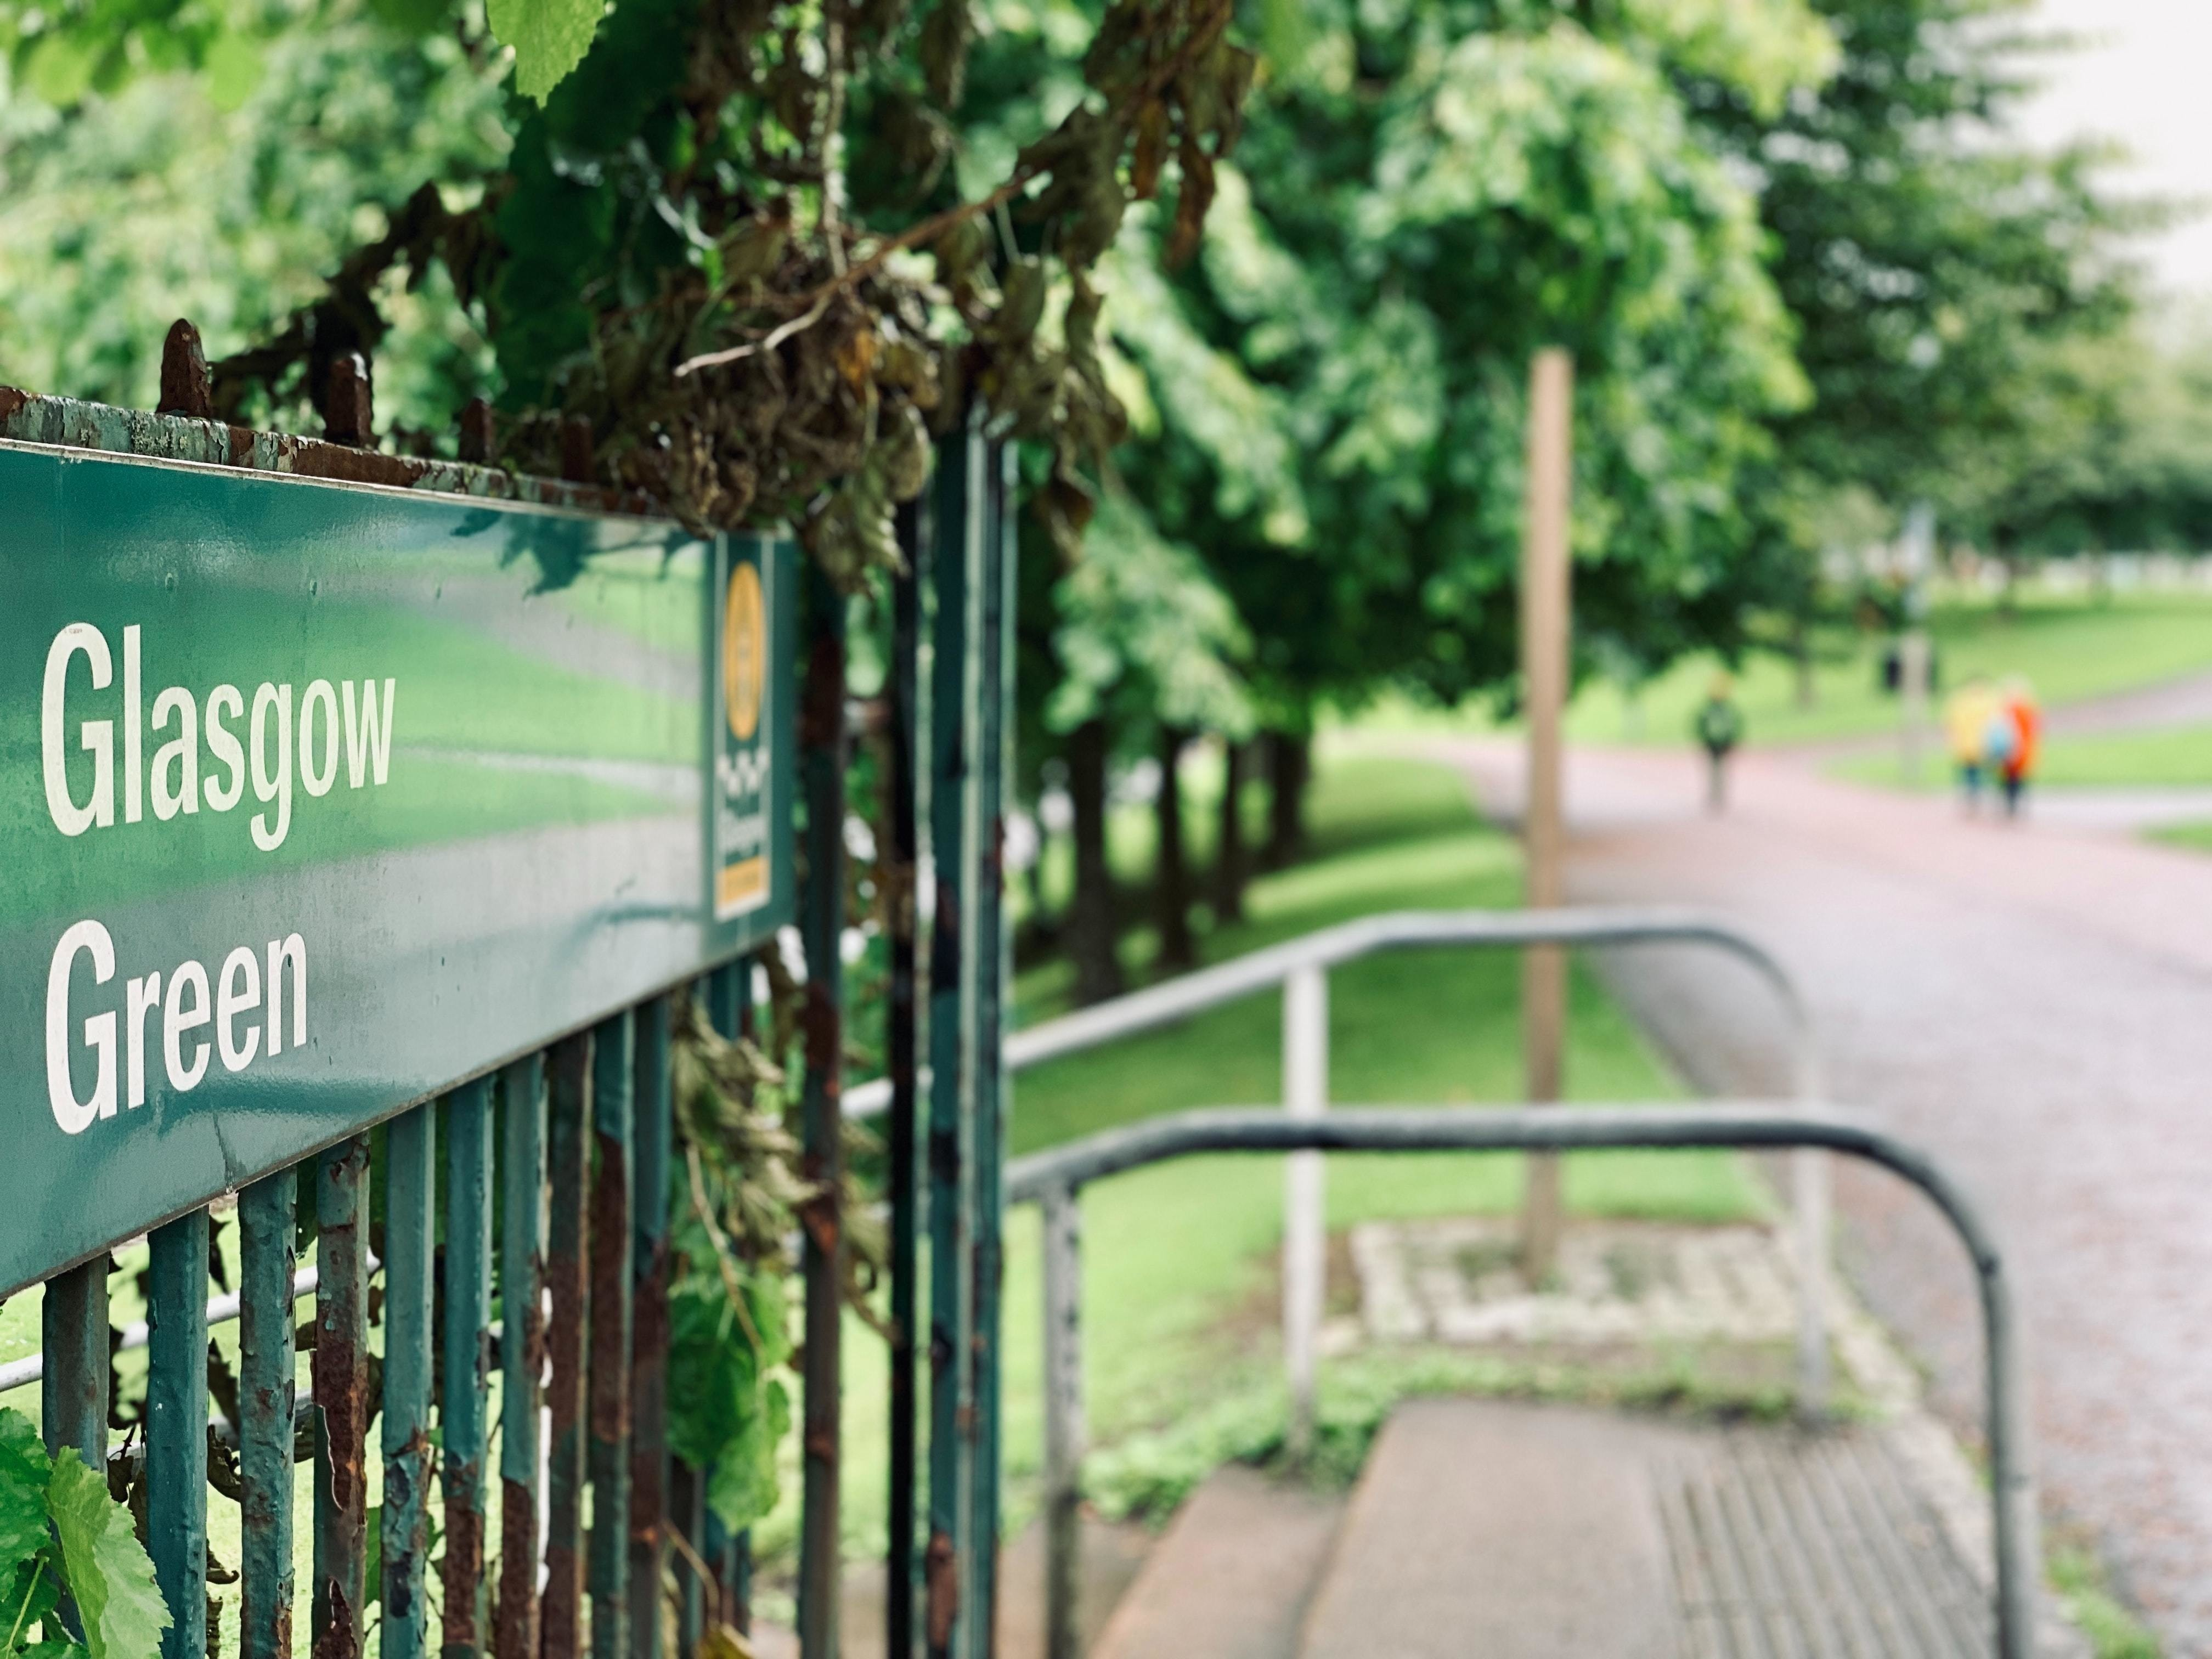 a picture of a sign in an urban green area saying Glasgow green